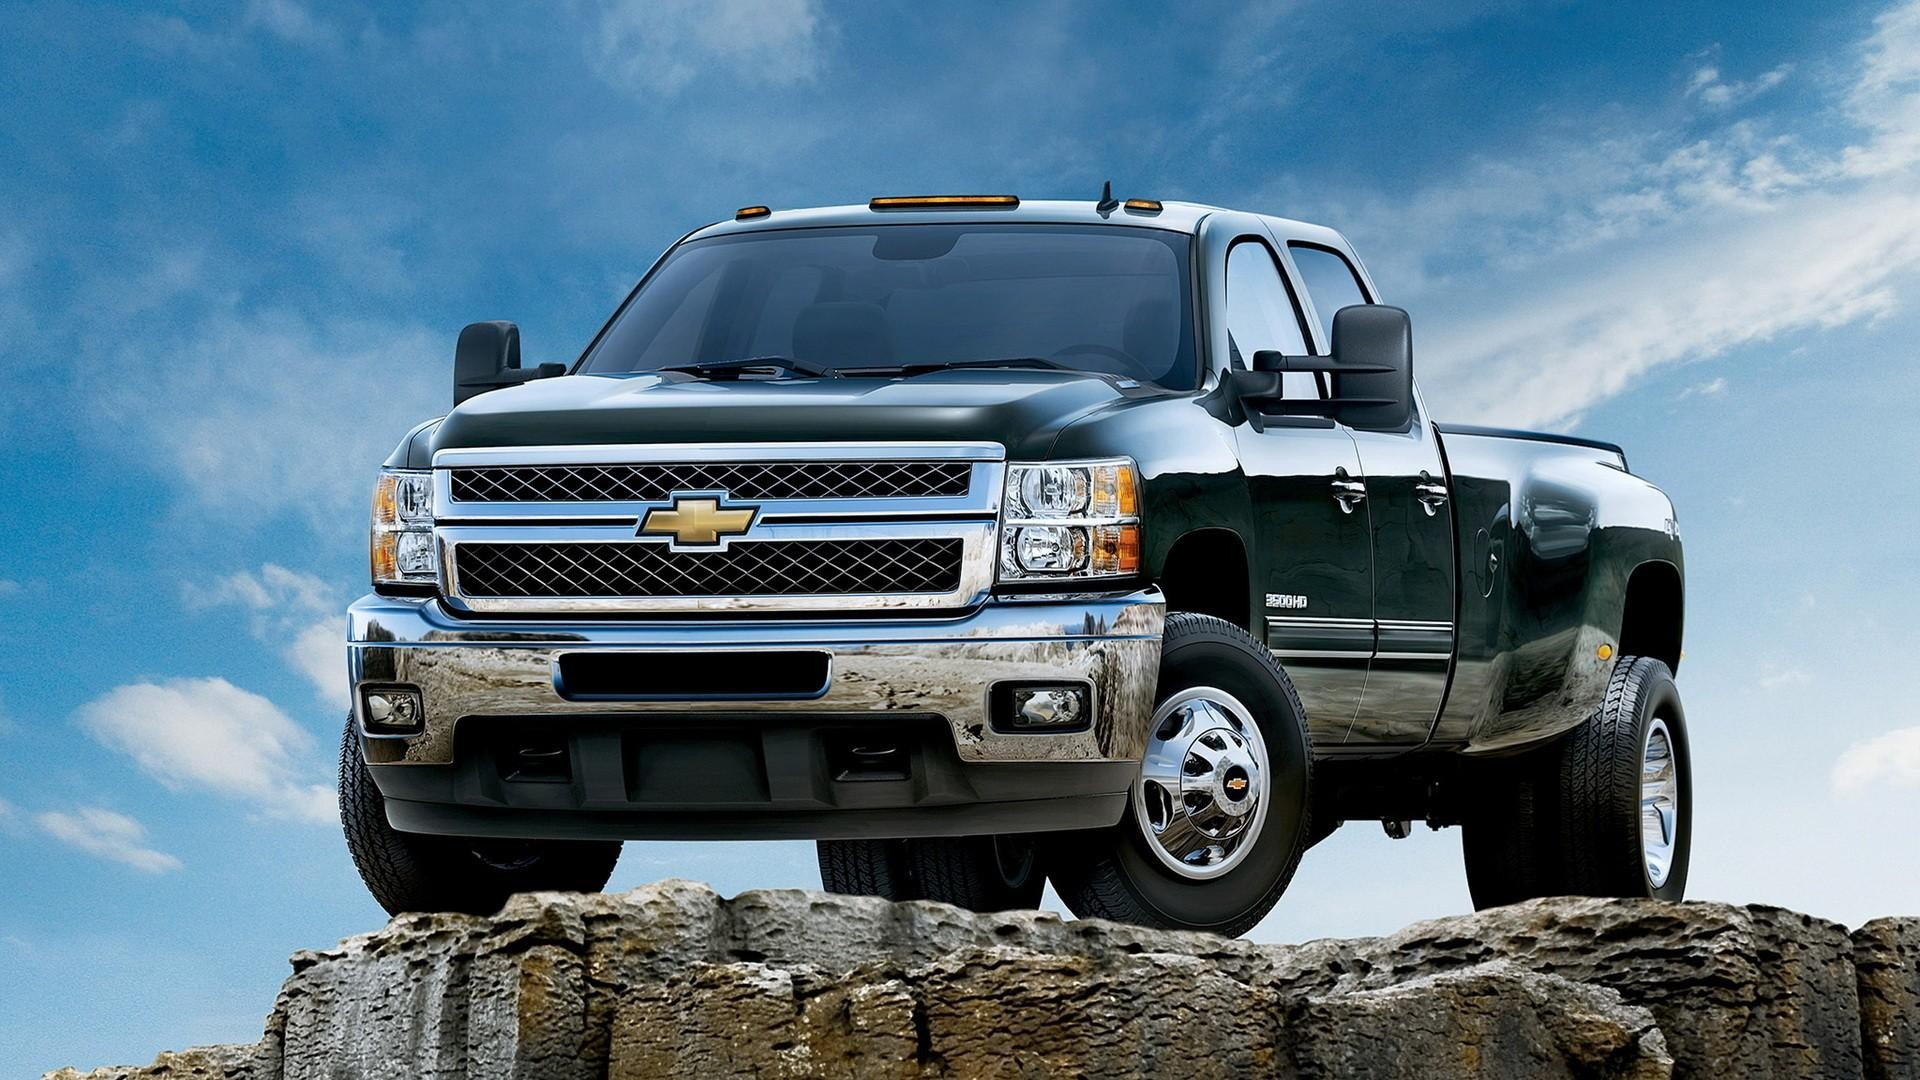 Chevy Truck Wallpapers